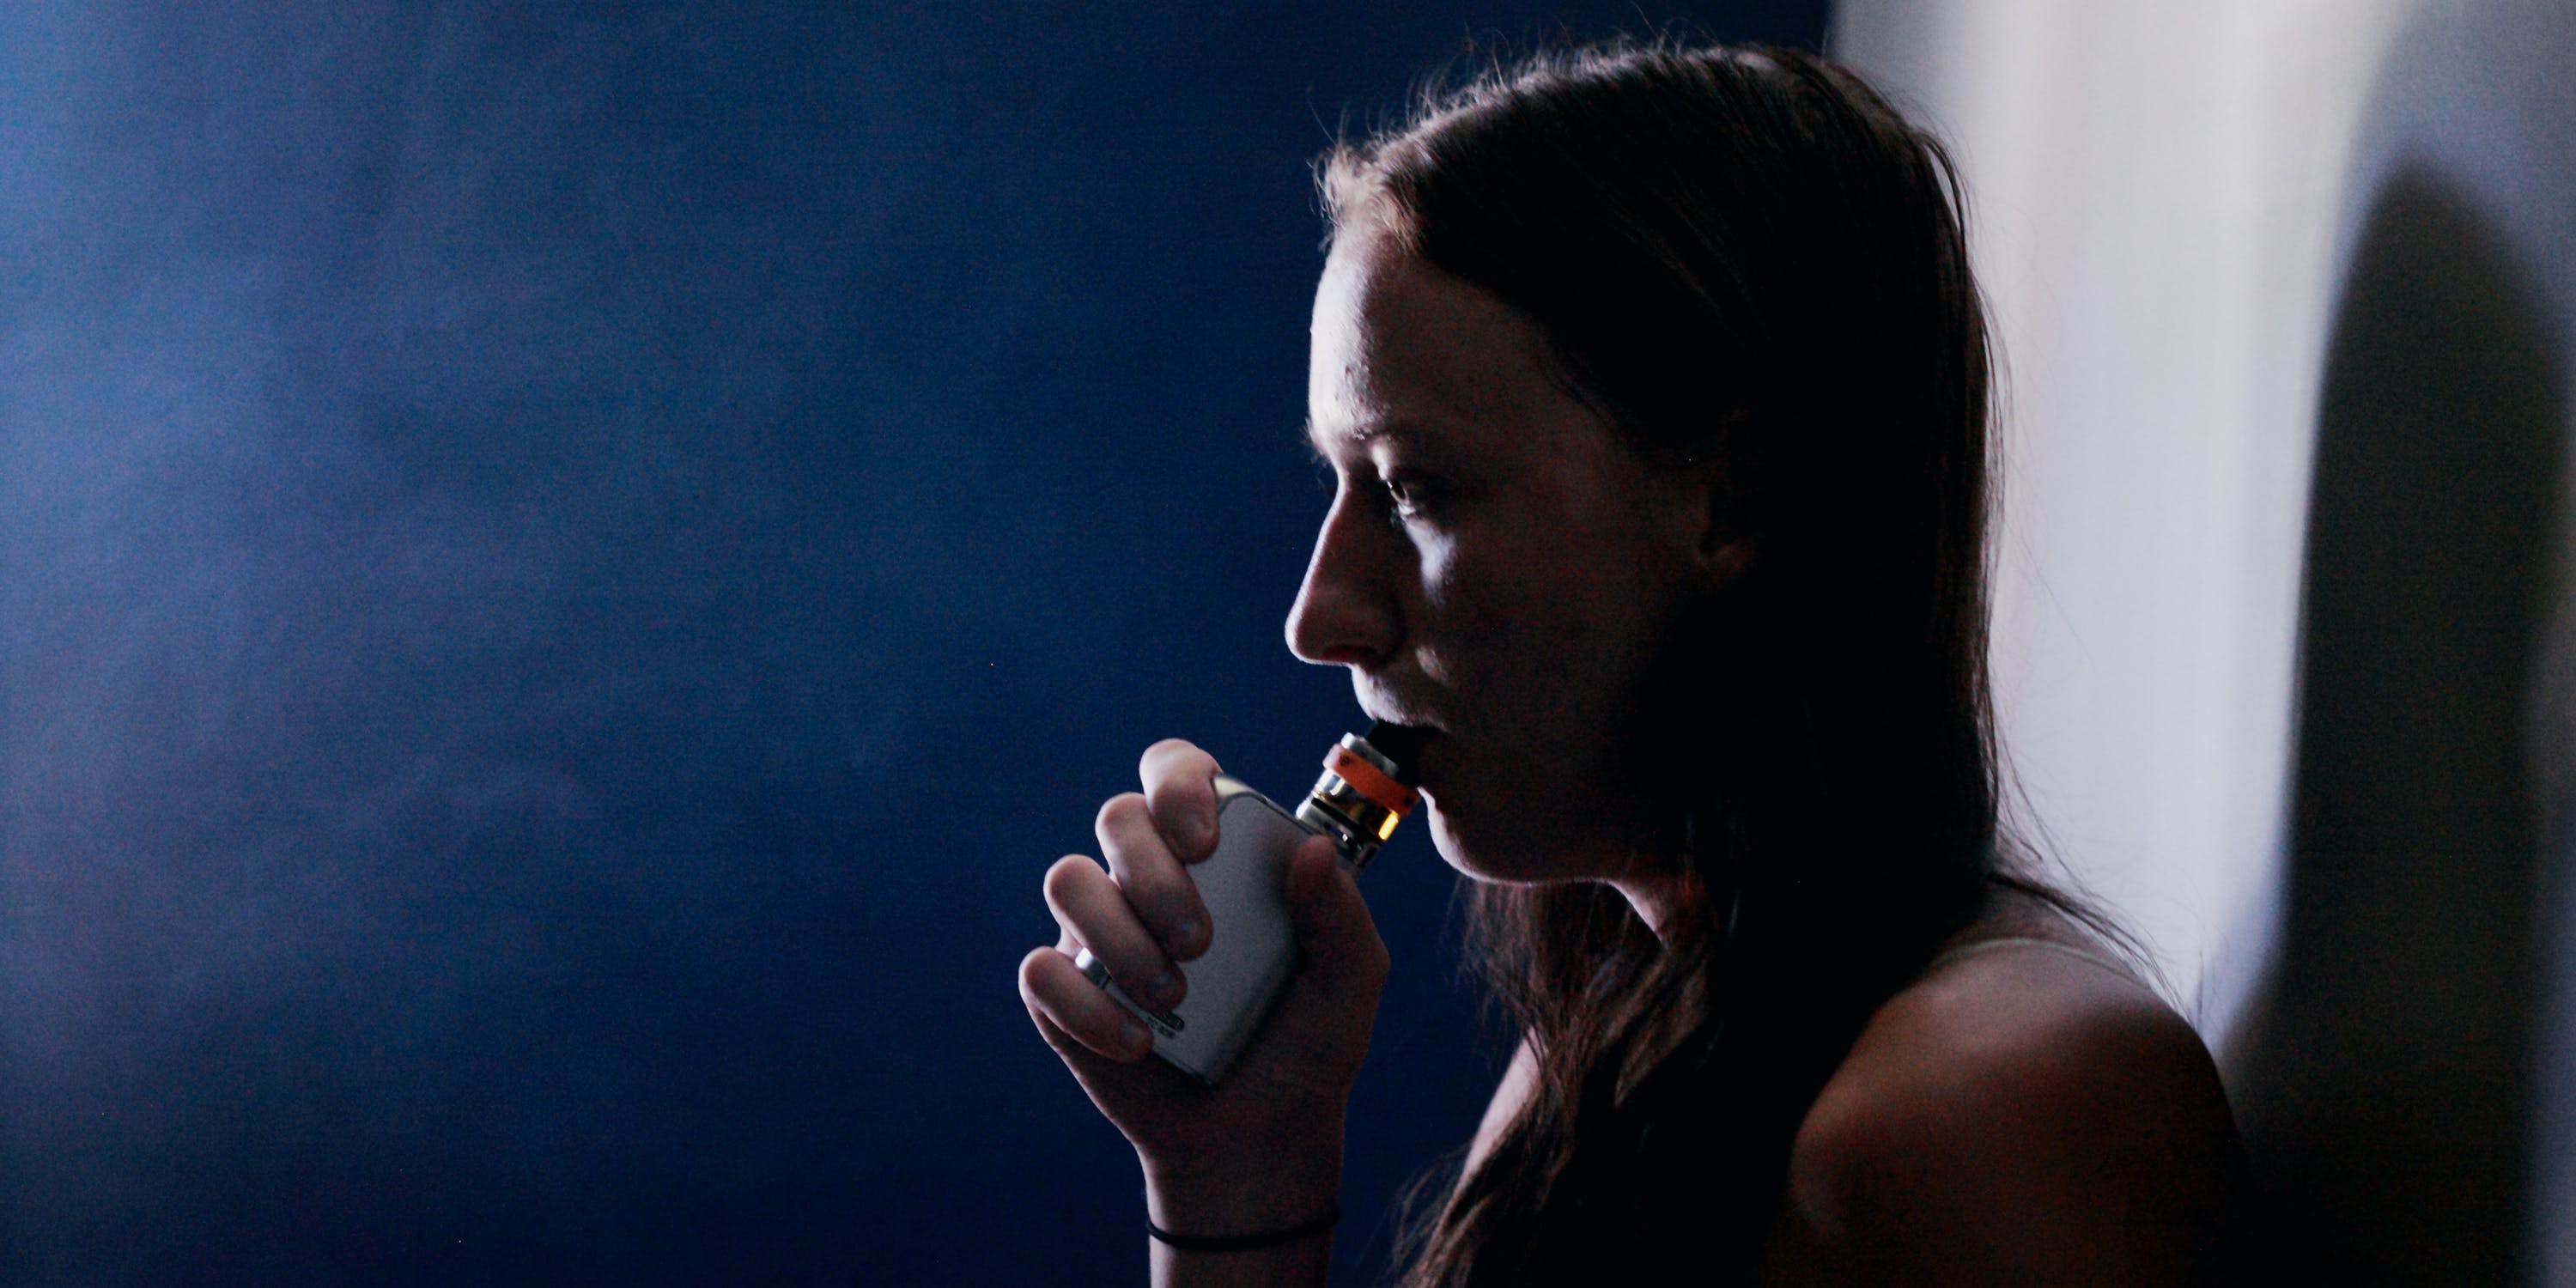 Side View Of Young Woman Smoking vape By Wall At Night